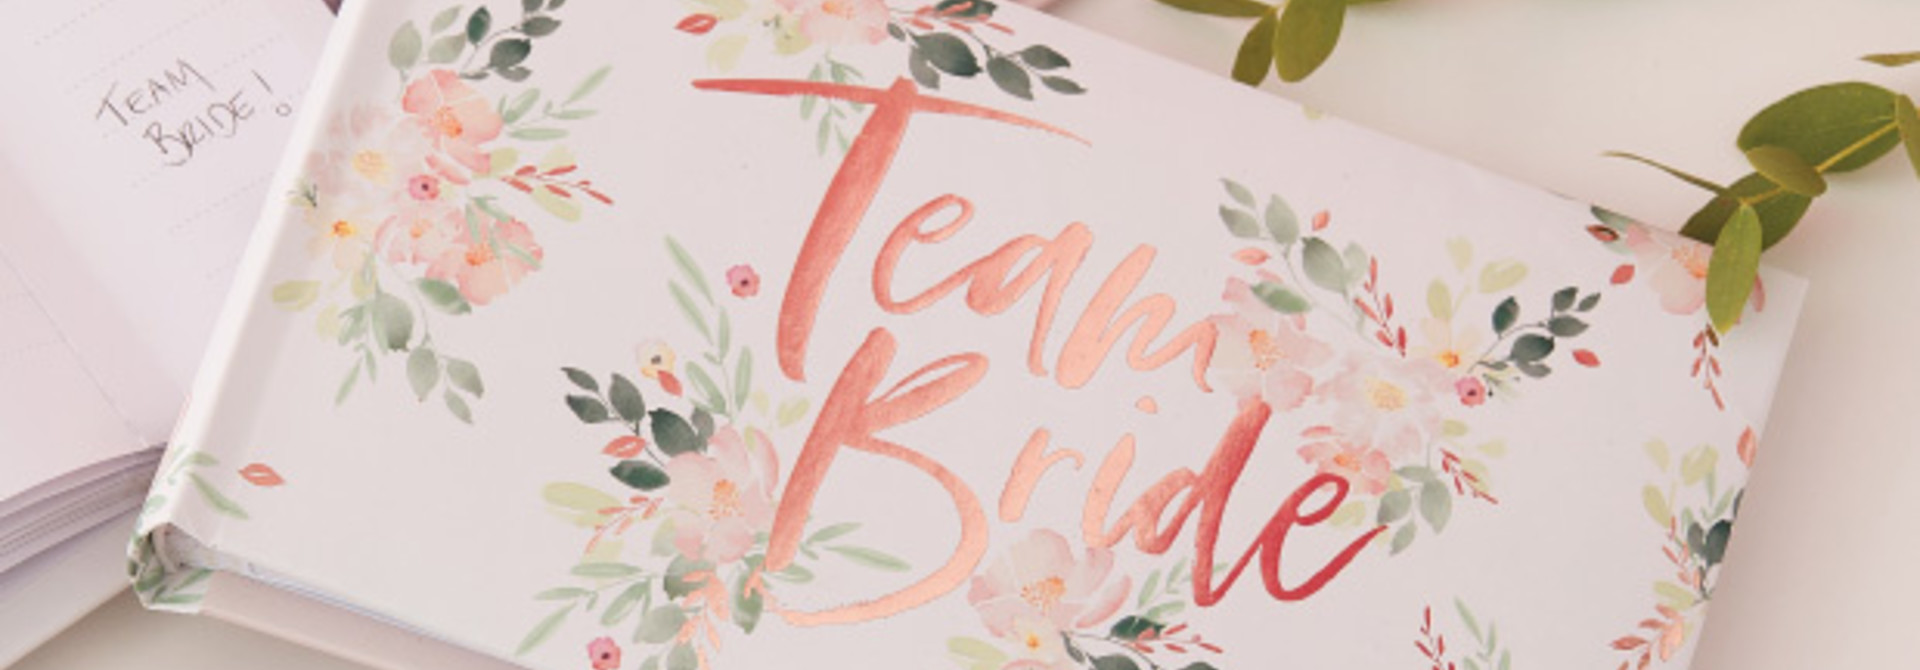 Team Bride fotoalbum Floral Hen Party - Ginger Ray